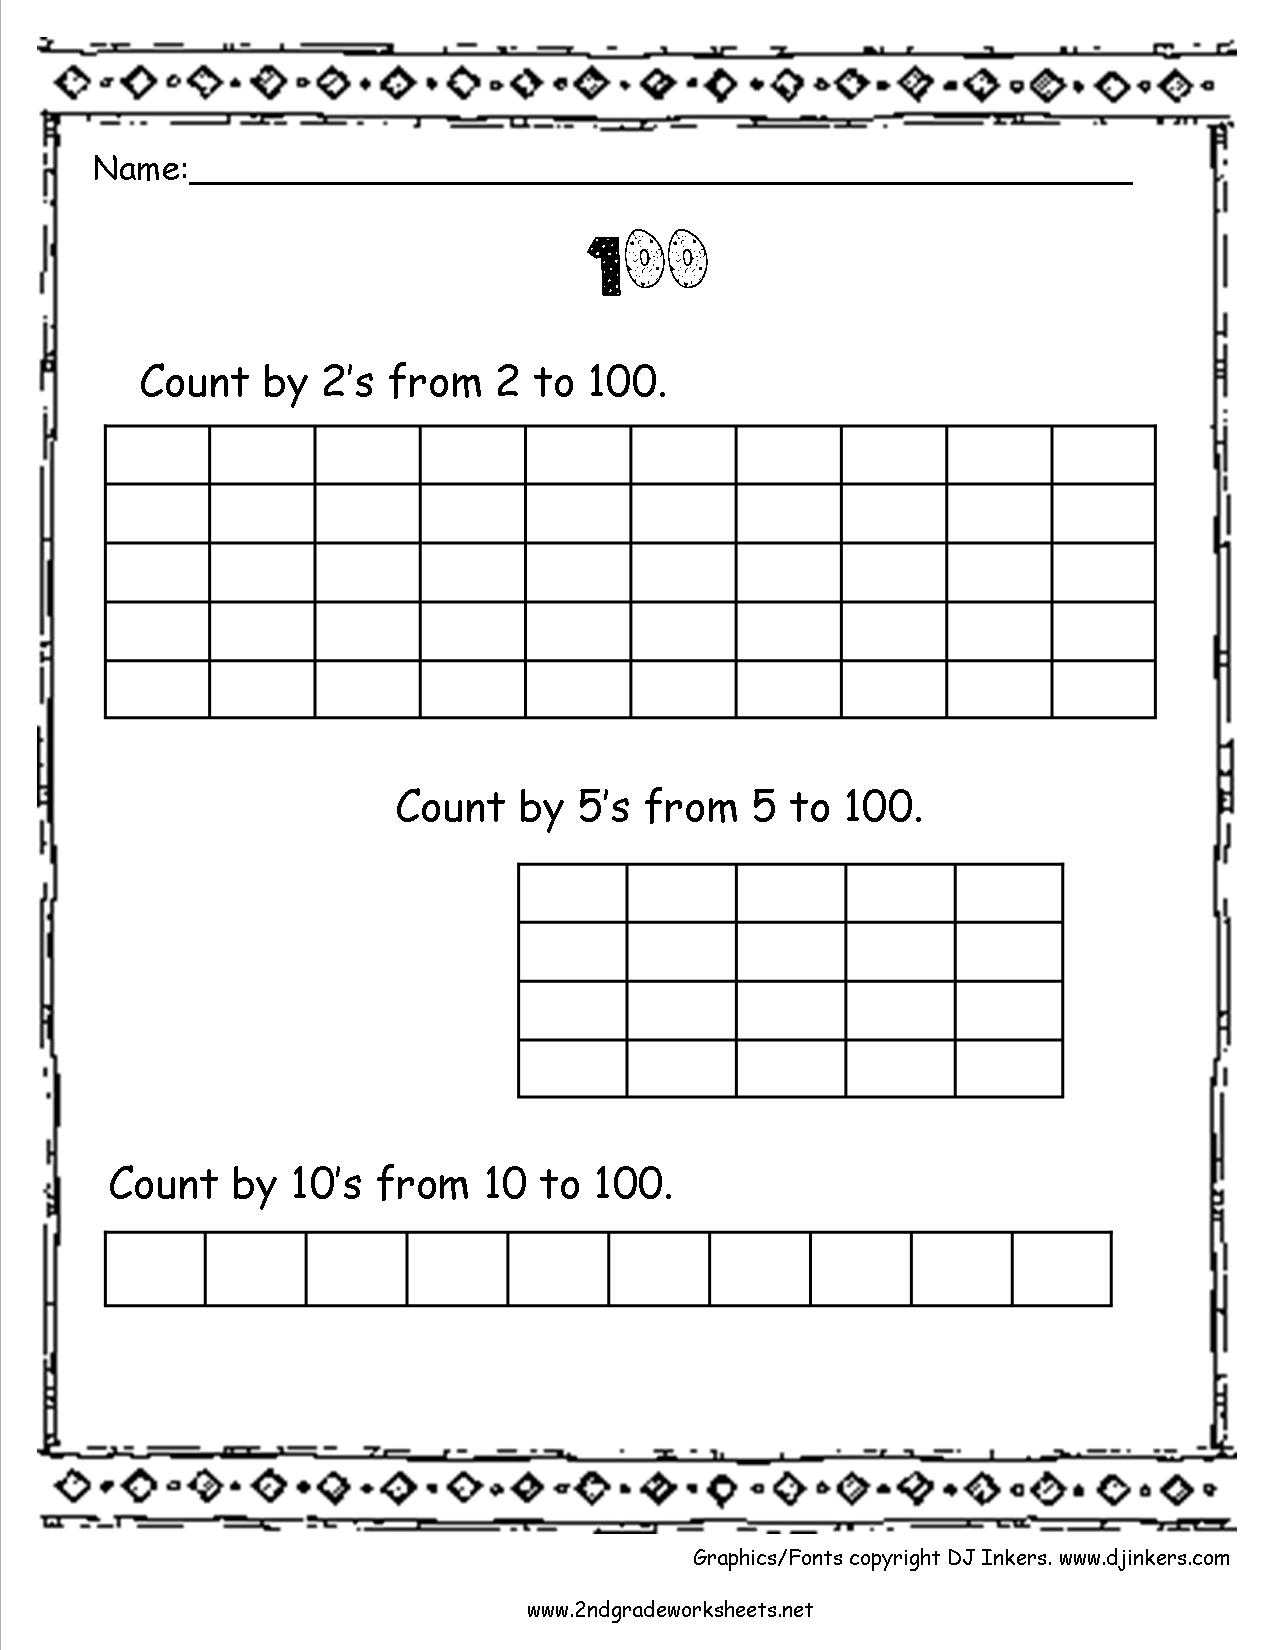 13 Best Images Of Counting By 10 100 Worksheets